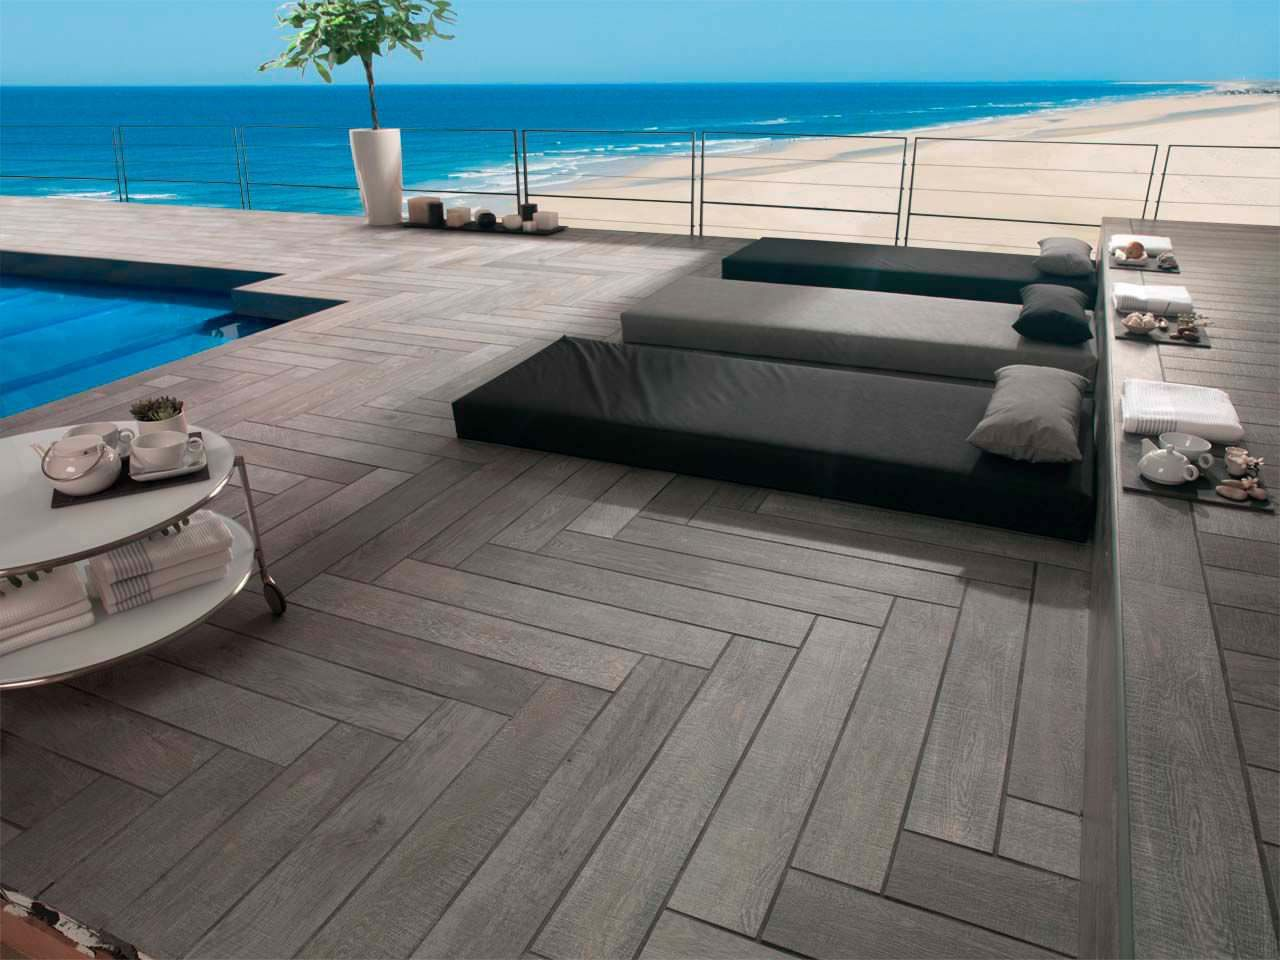 Outdoor wood tile google search reno pictures pinterest outdoor wood tile google search dailygadgetfo Images